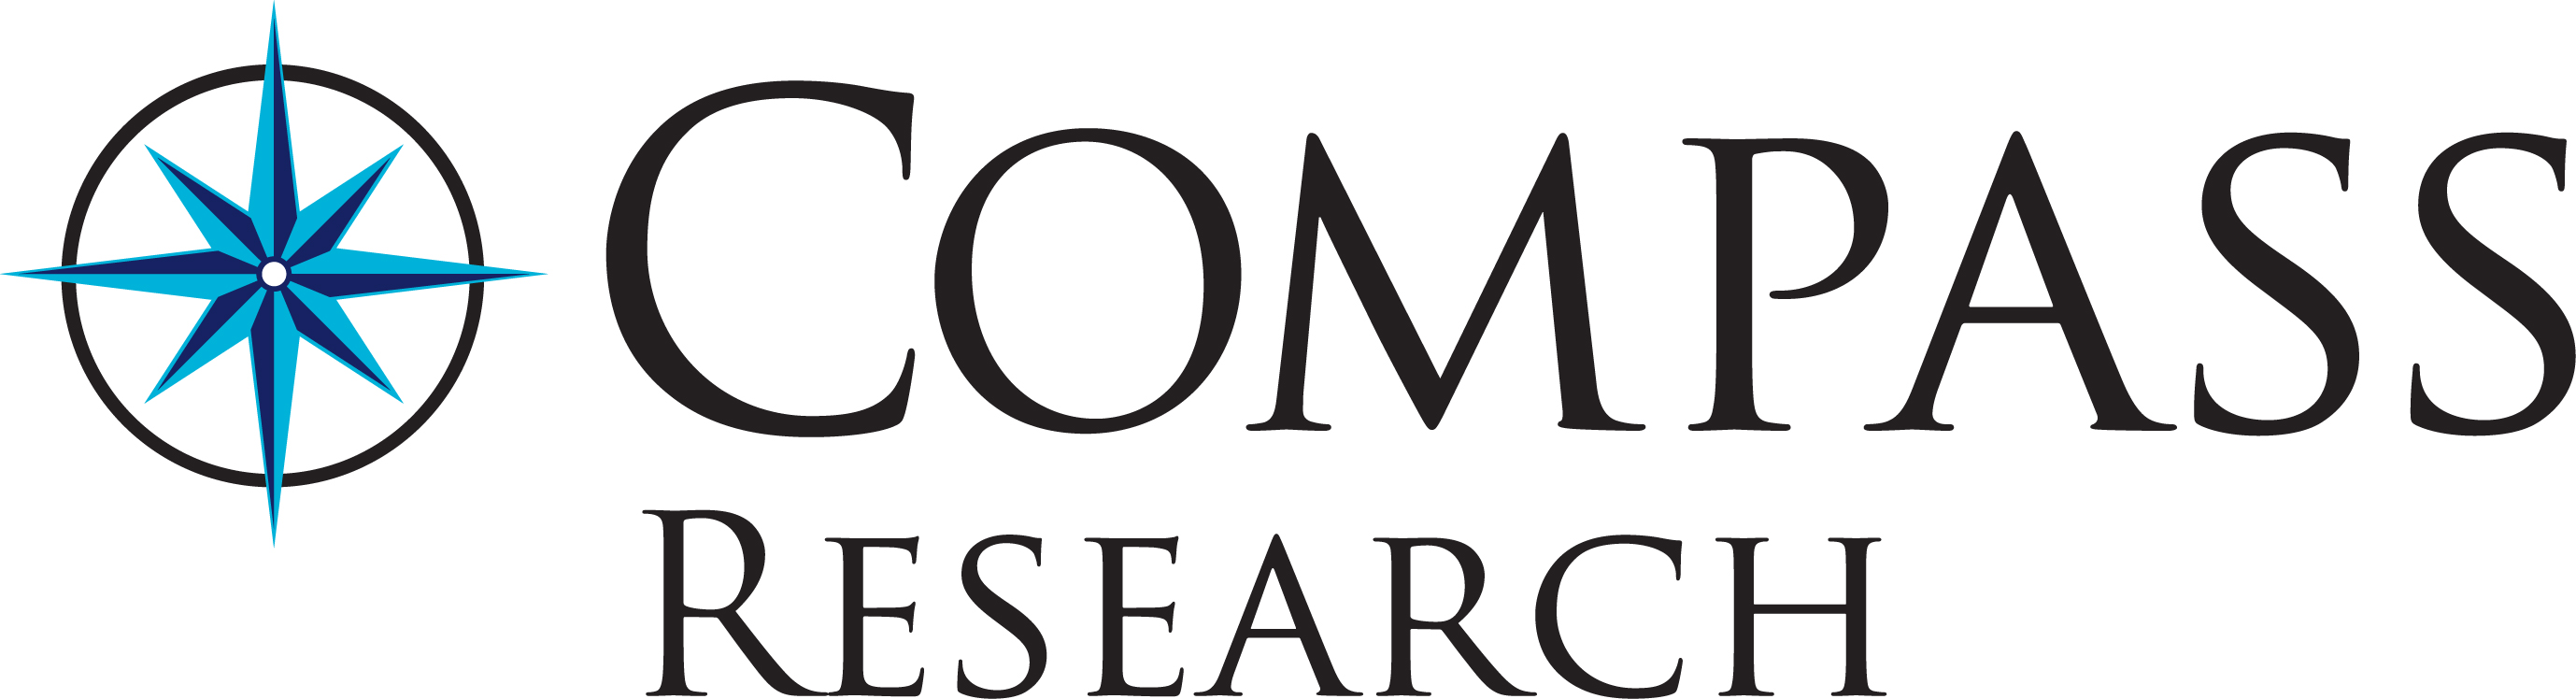 COMPASS RESEARCH LOGO - WHITE BACKGROUND (3)